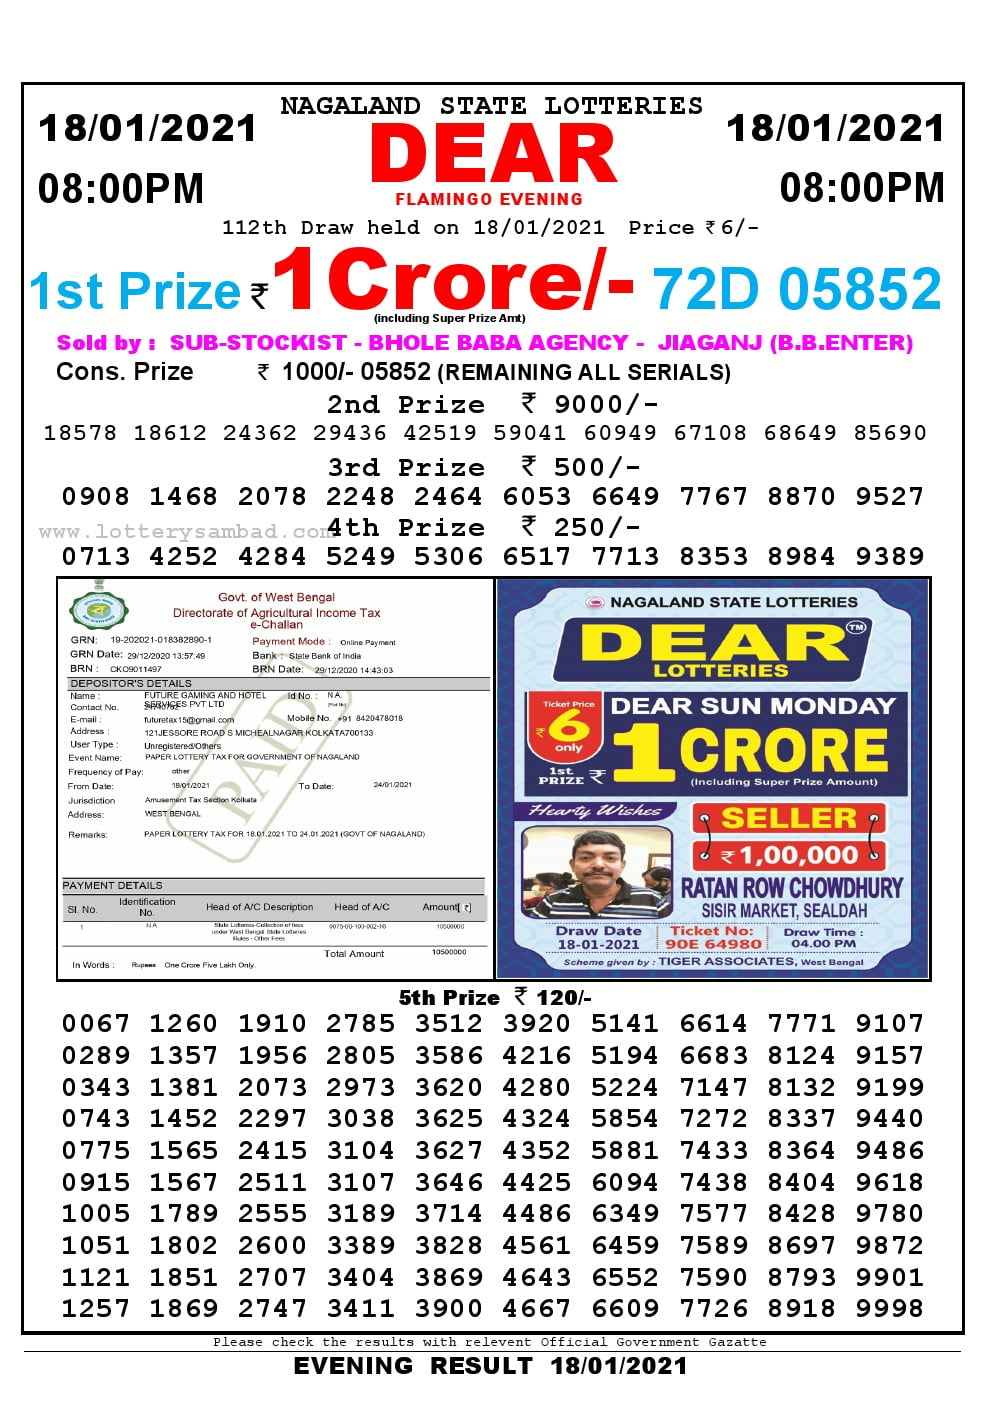 Dear Lottery Result Today 8pm 15 18/01/2021 Nagaland State lottery result pdf